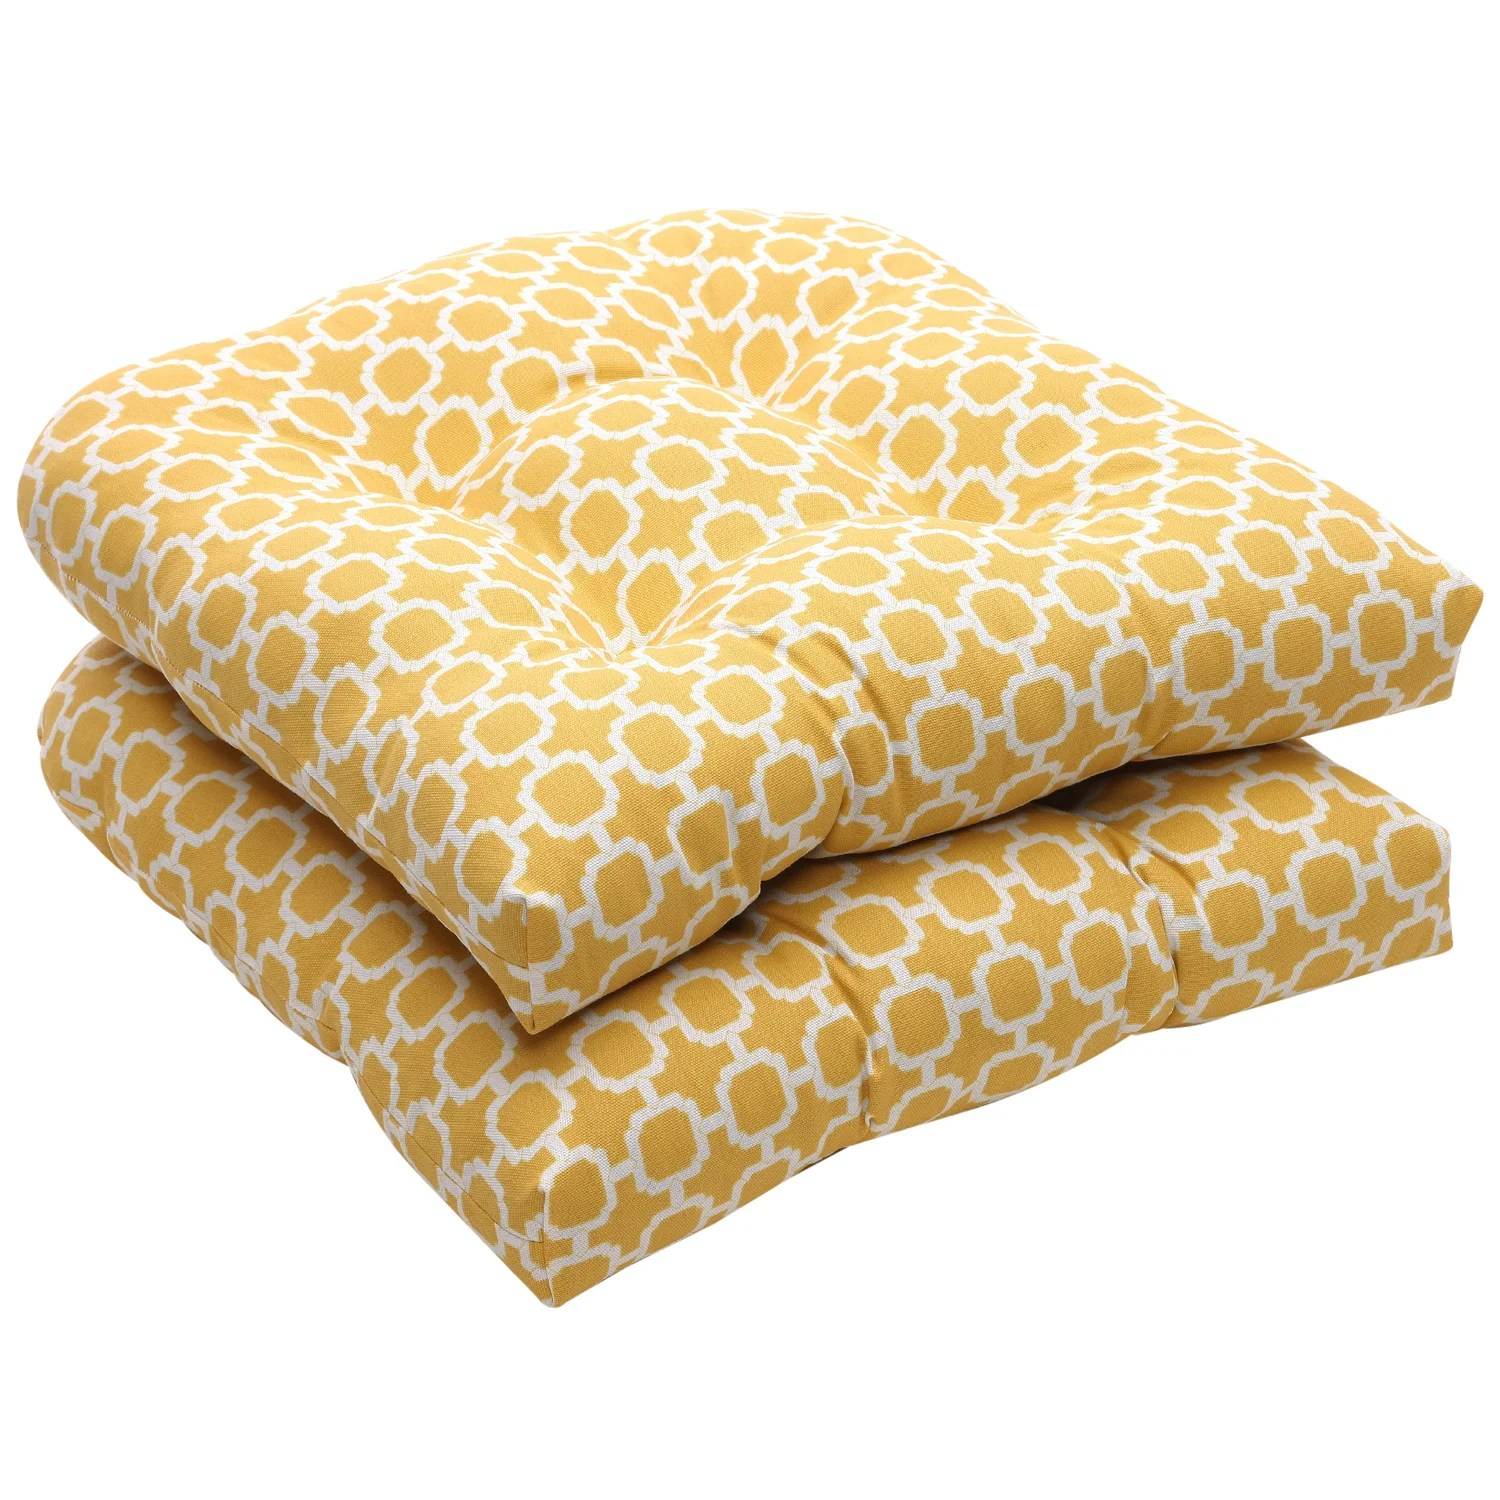 Shop Outdoor Yellow and White Geometric Wicker Seat